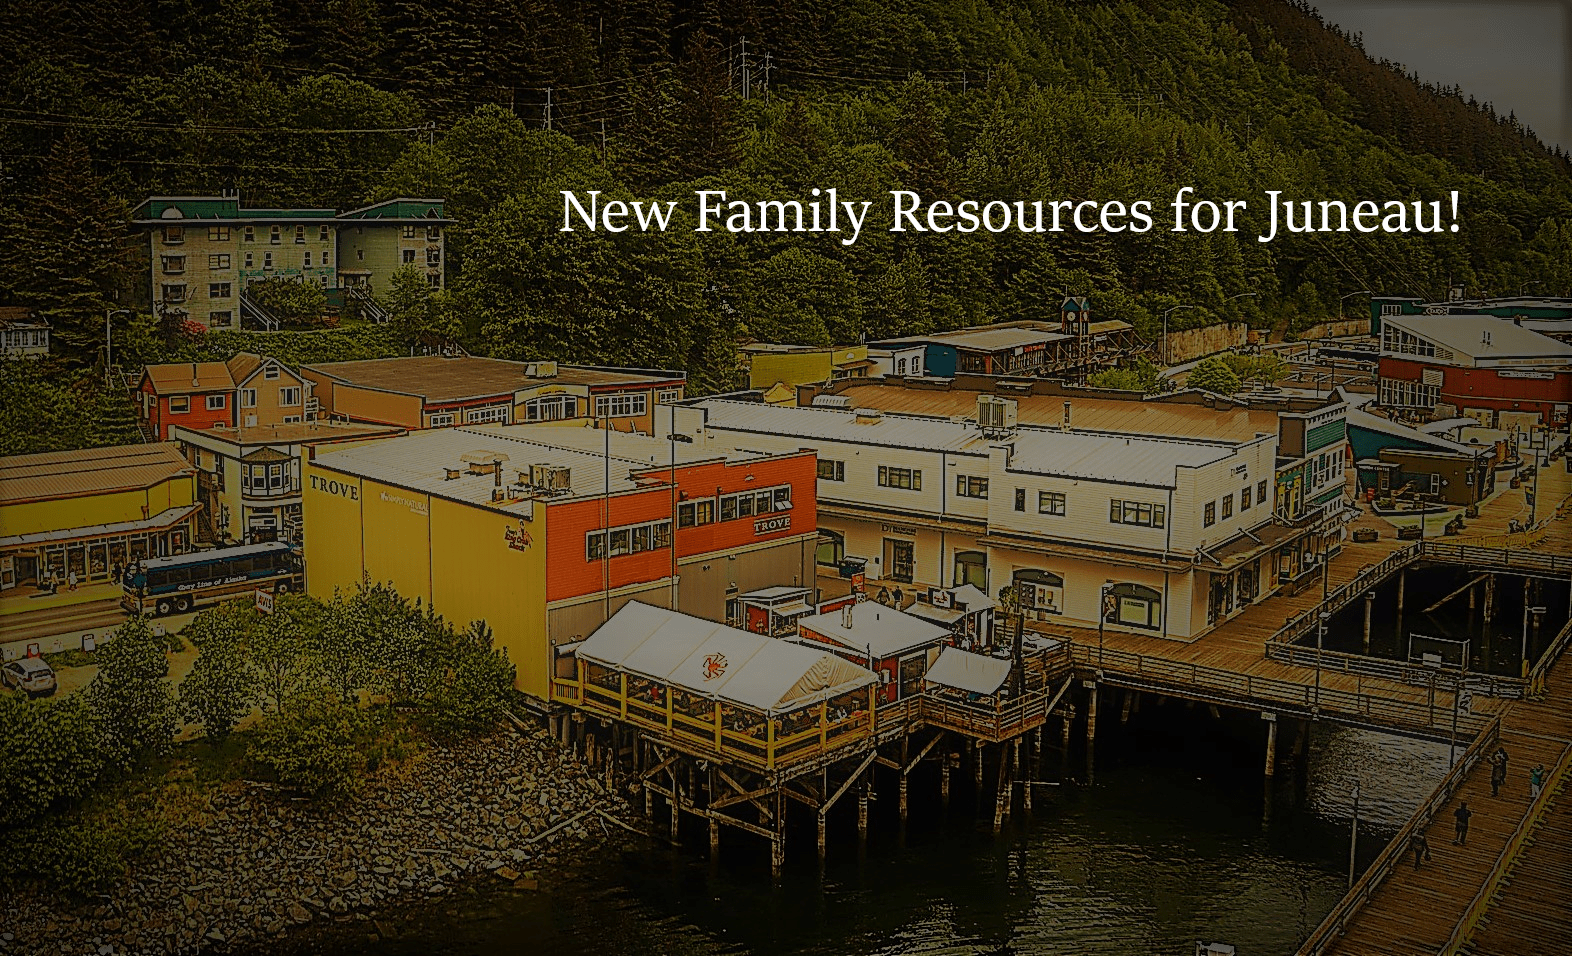 New Family Resources for Juneau is in bold white text at the top of an image of Juneau, Alaska's waterfront near South Franklin Street